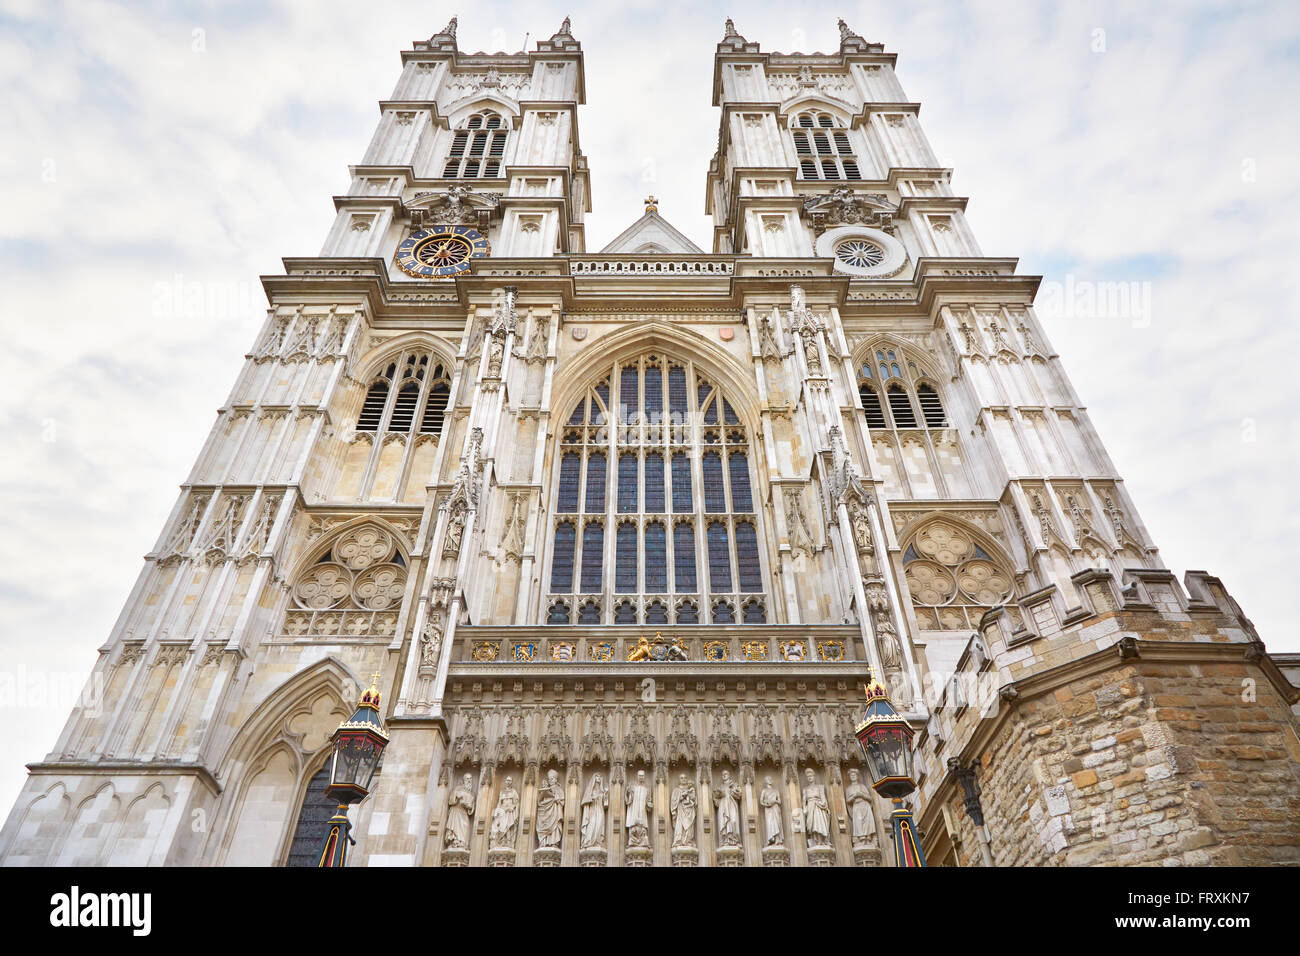 Westminster Abbey church facade on cloudy sky in London - Stock Image